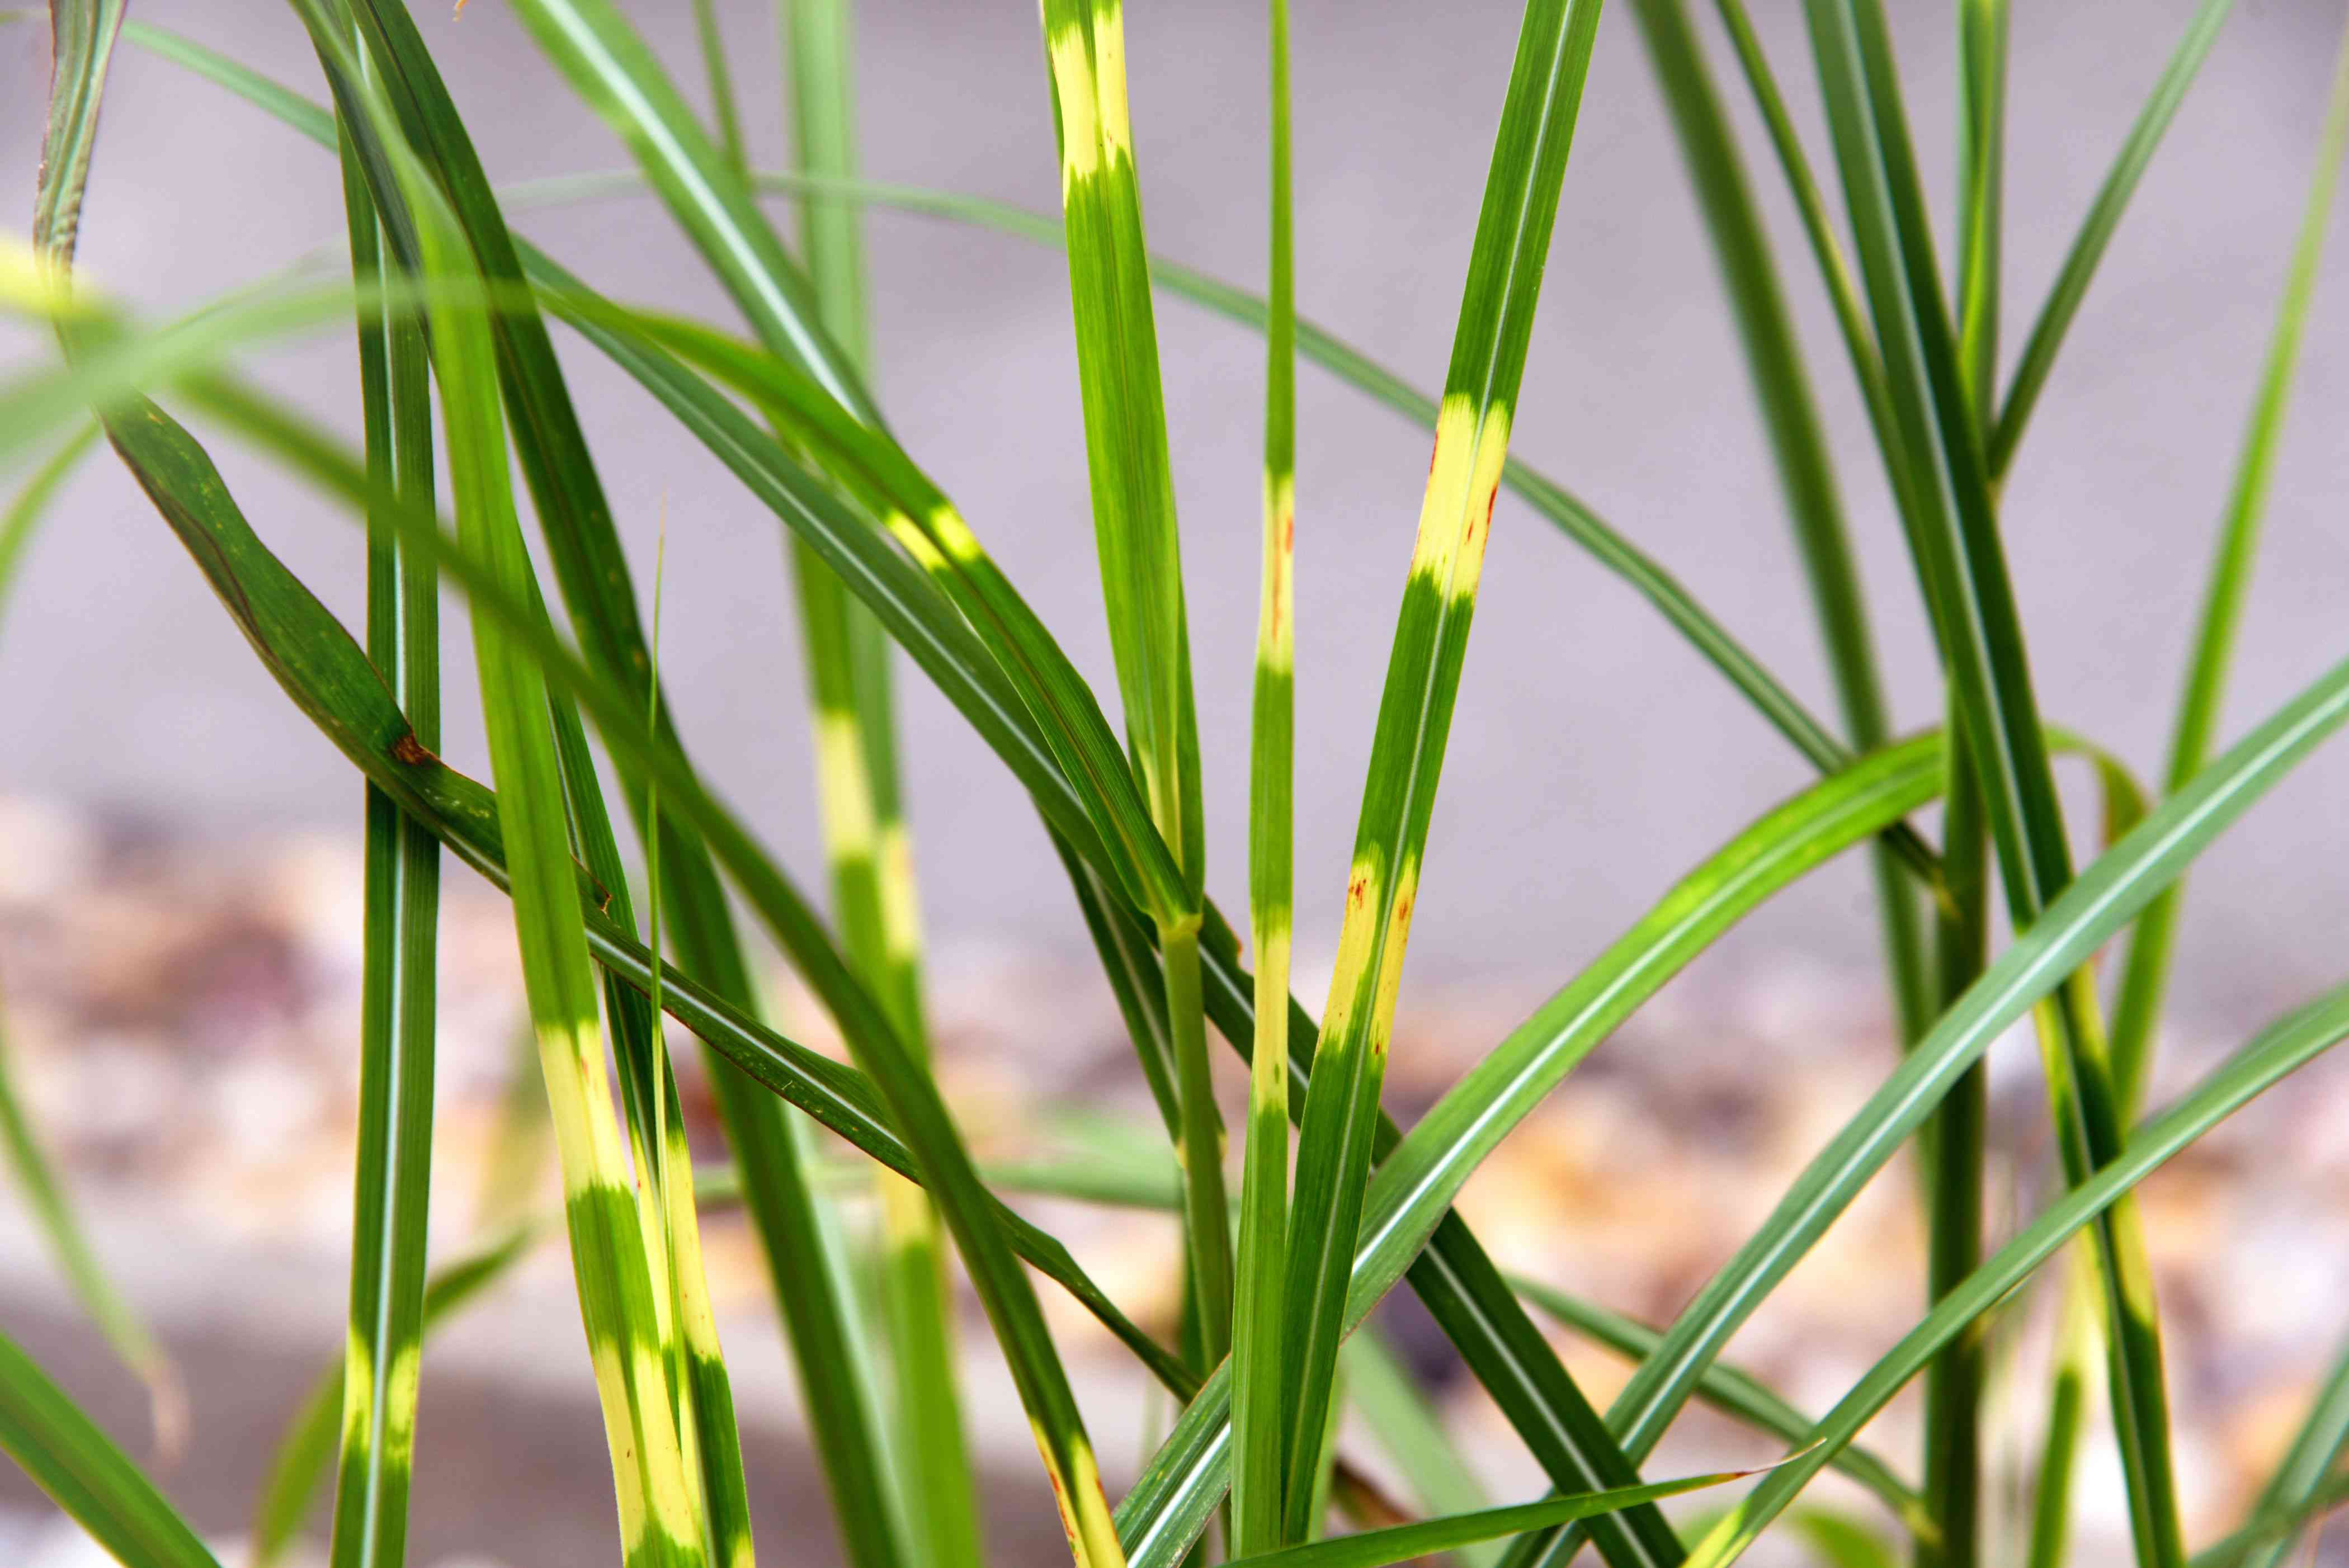 Zebra ornamental grass with green and yellow striped leaf blades closeup